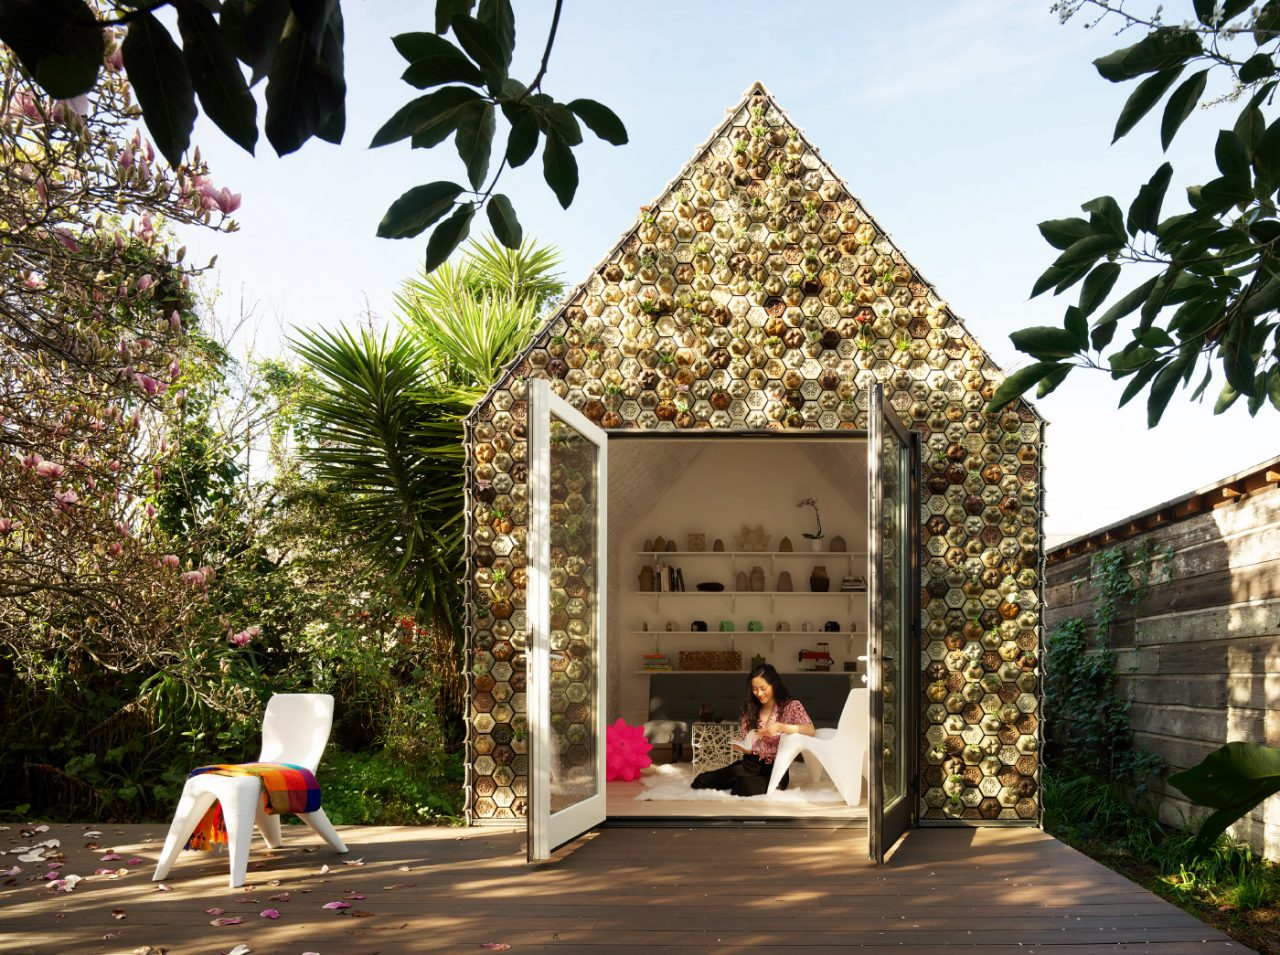 A gabled cabin covered in 3D printed plant pots